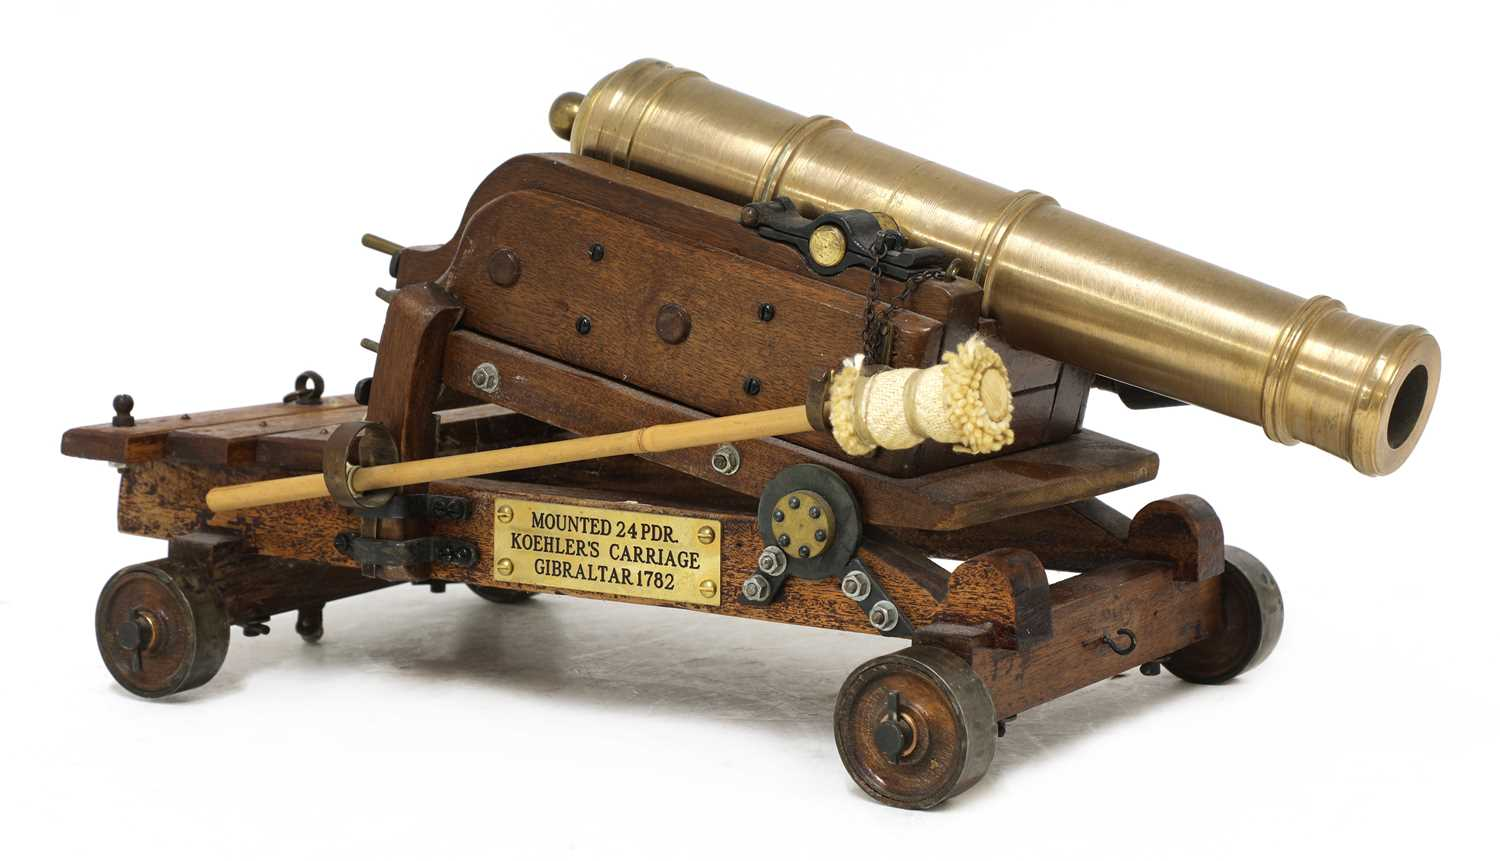 A model of a late 18th century 24lb Gibraltar cannon, - Image 4 of 6